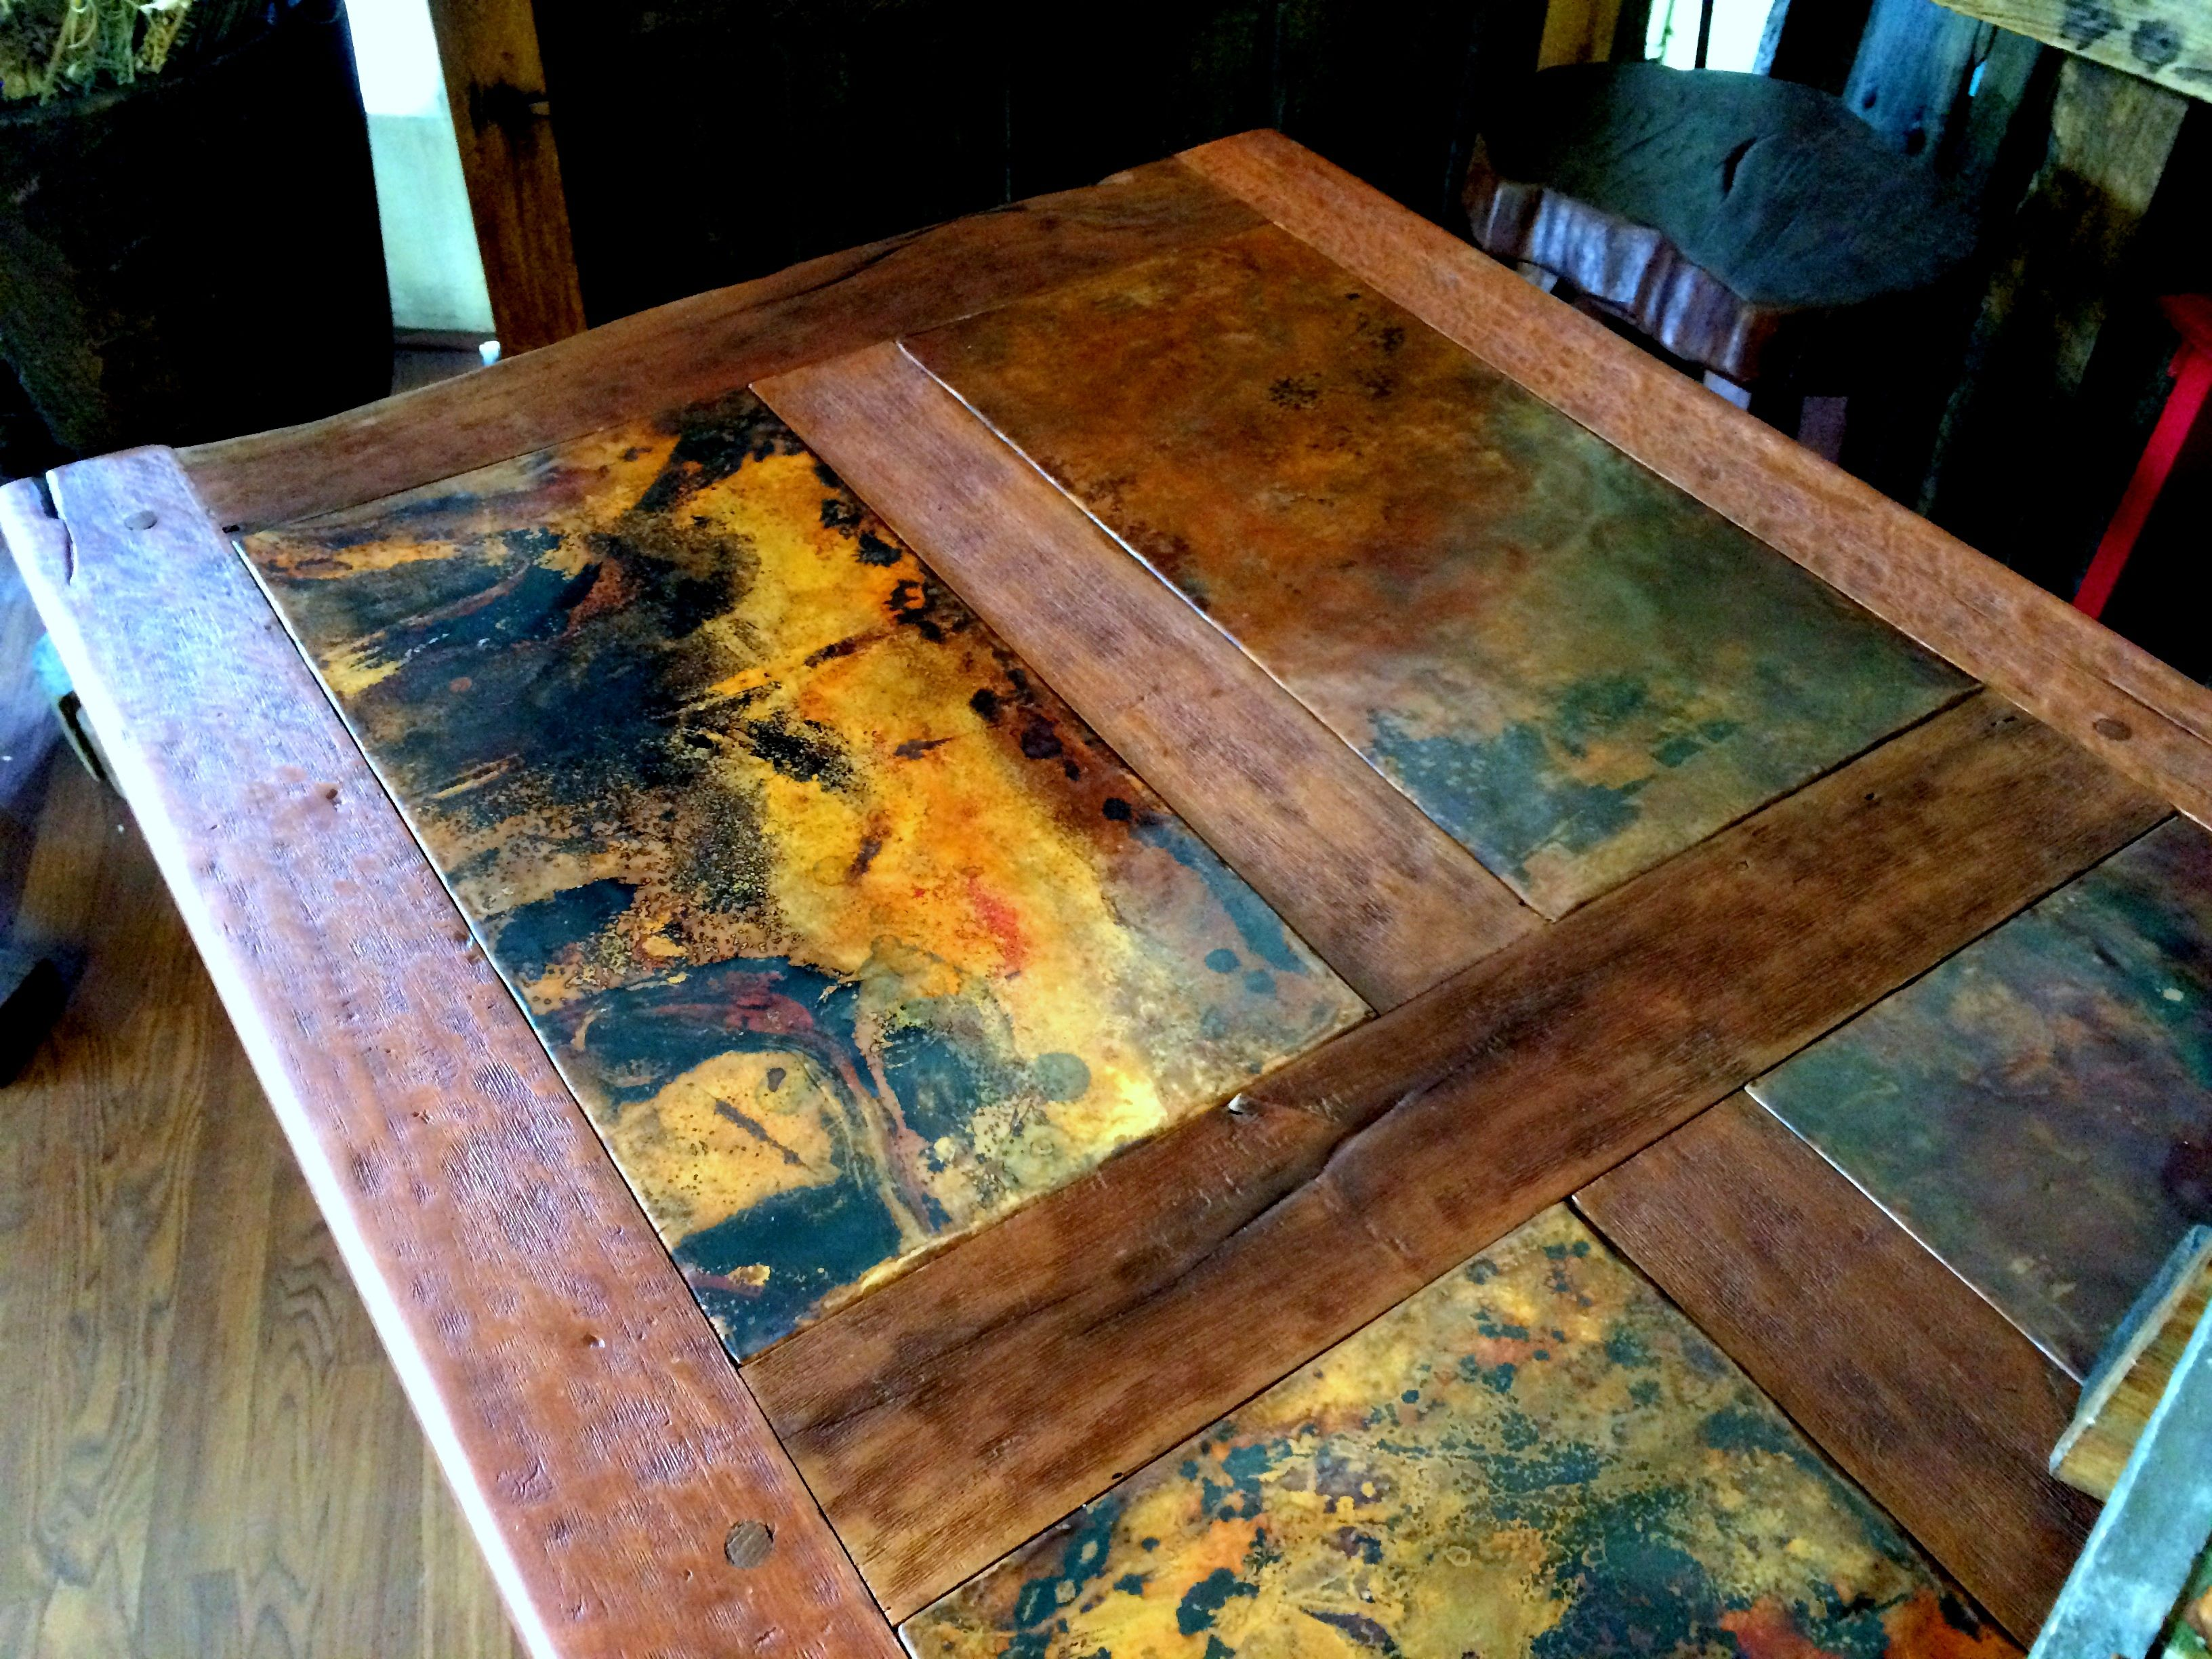 Beautiful Rustic Handmade Table With Stone Top. At Mexico Lindo Store On  Cerrillos Road In